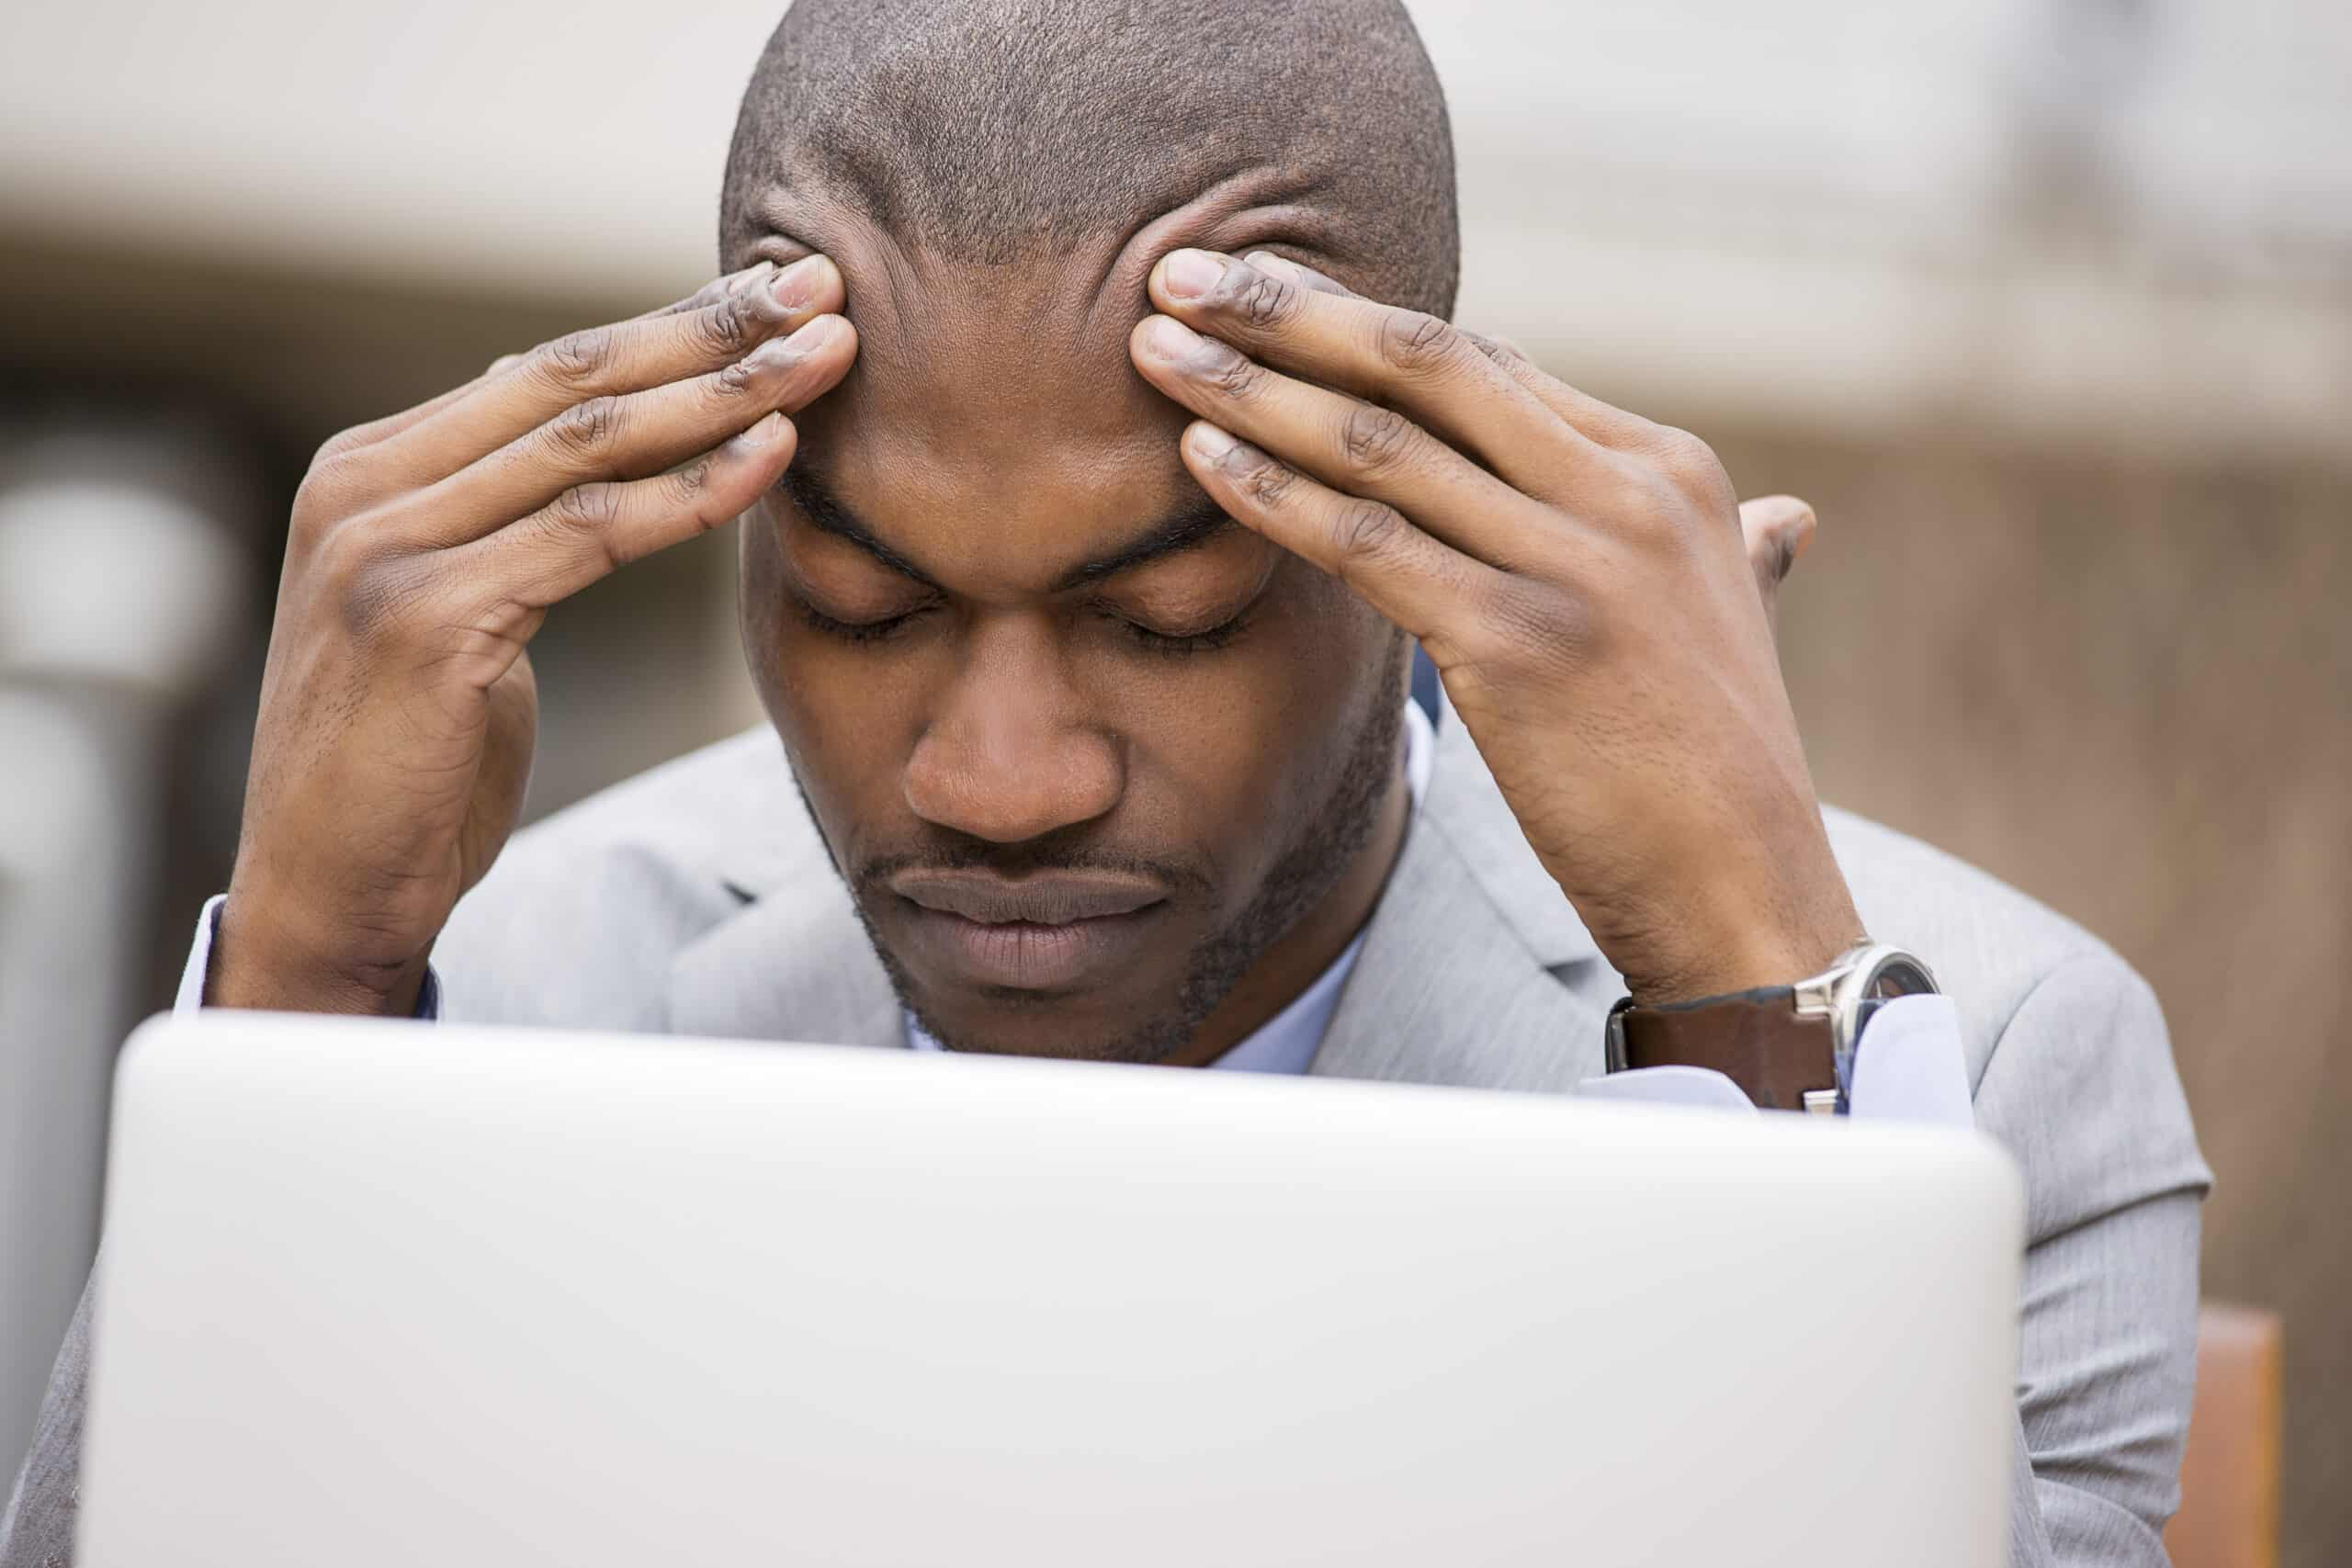 Stressed young man rubbing forehead in front of laptop